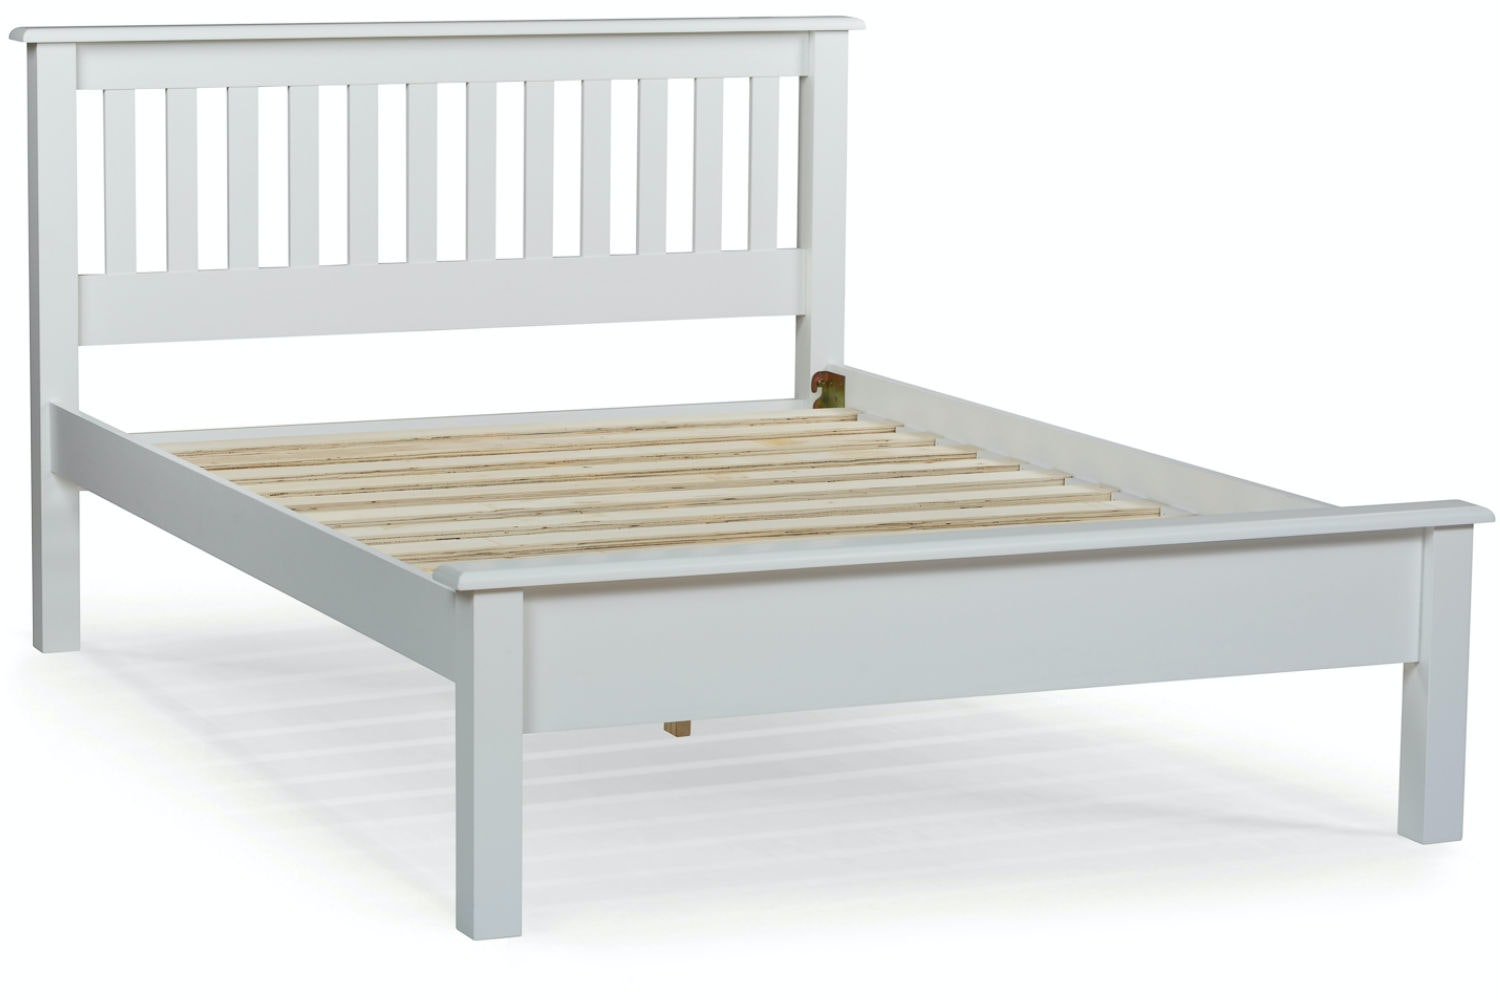 Shaker Double Bed Frame : 4ft6 : White : Ireland